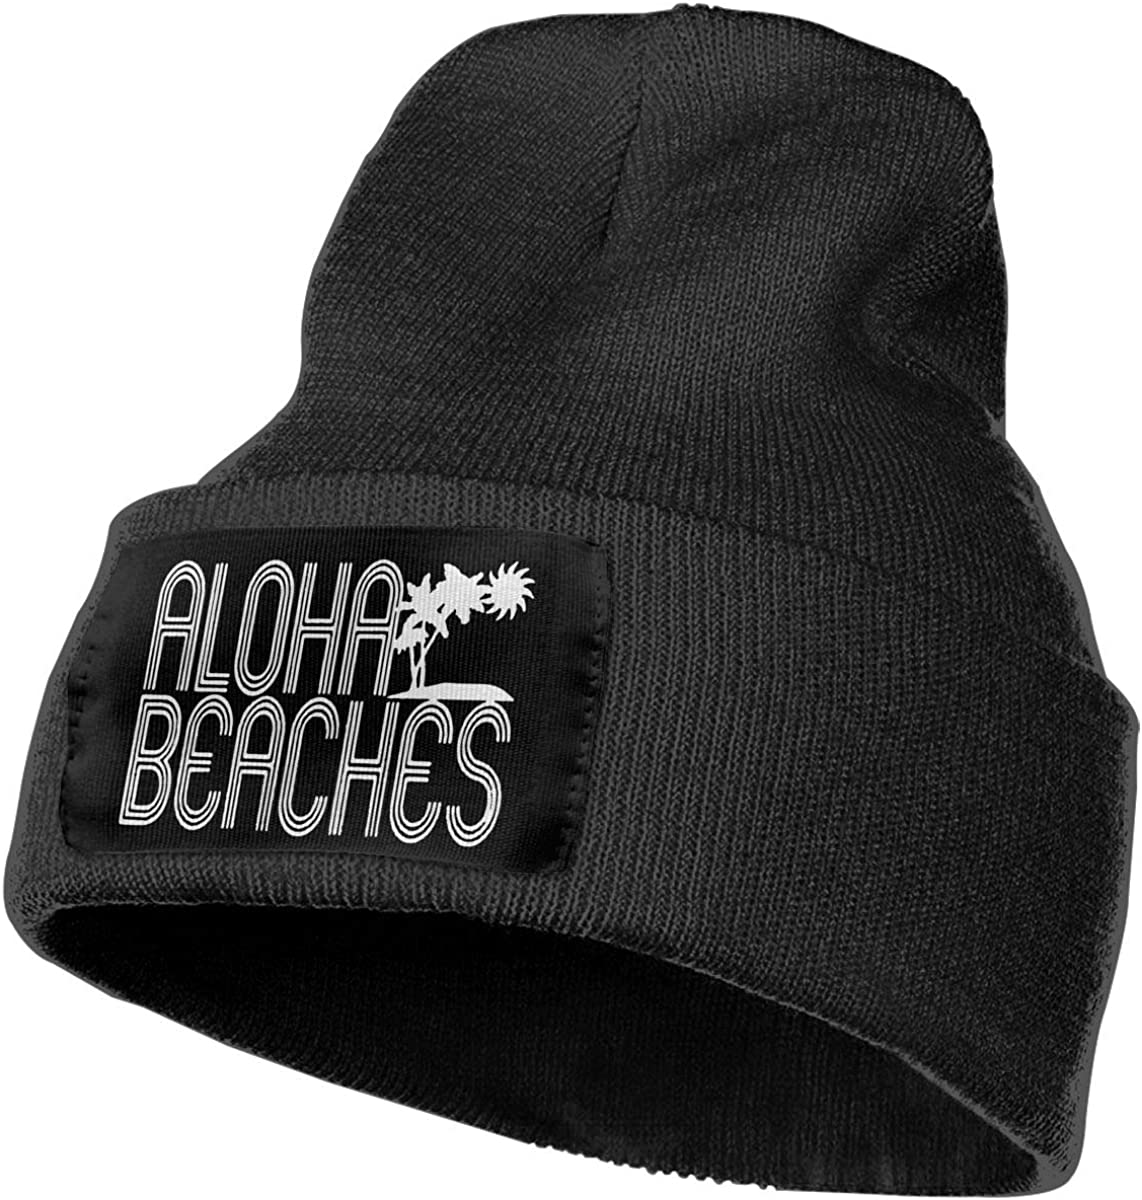 Unisex Aloha Beaches Outdoor Warm Knit Beanies Hat Soft Winter Knit Caps